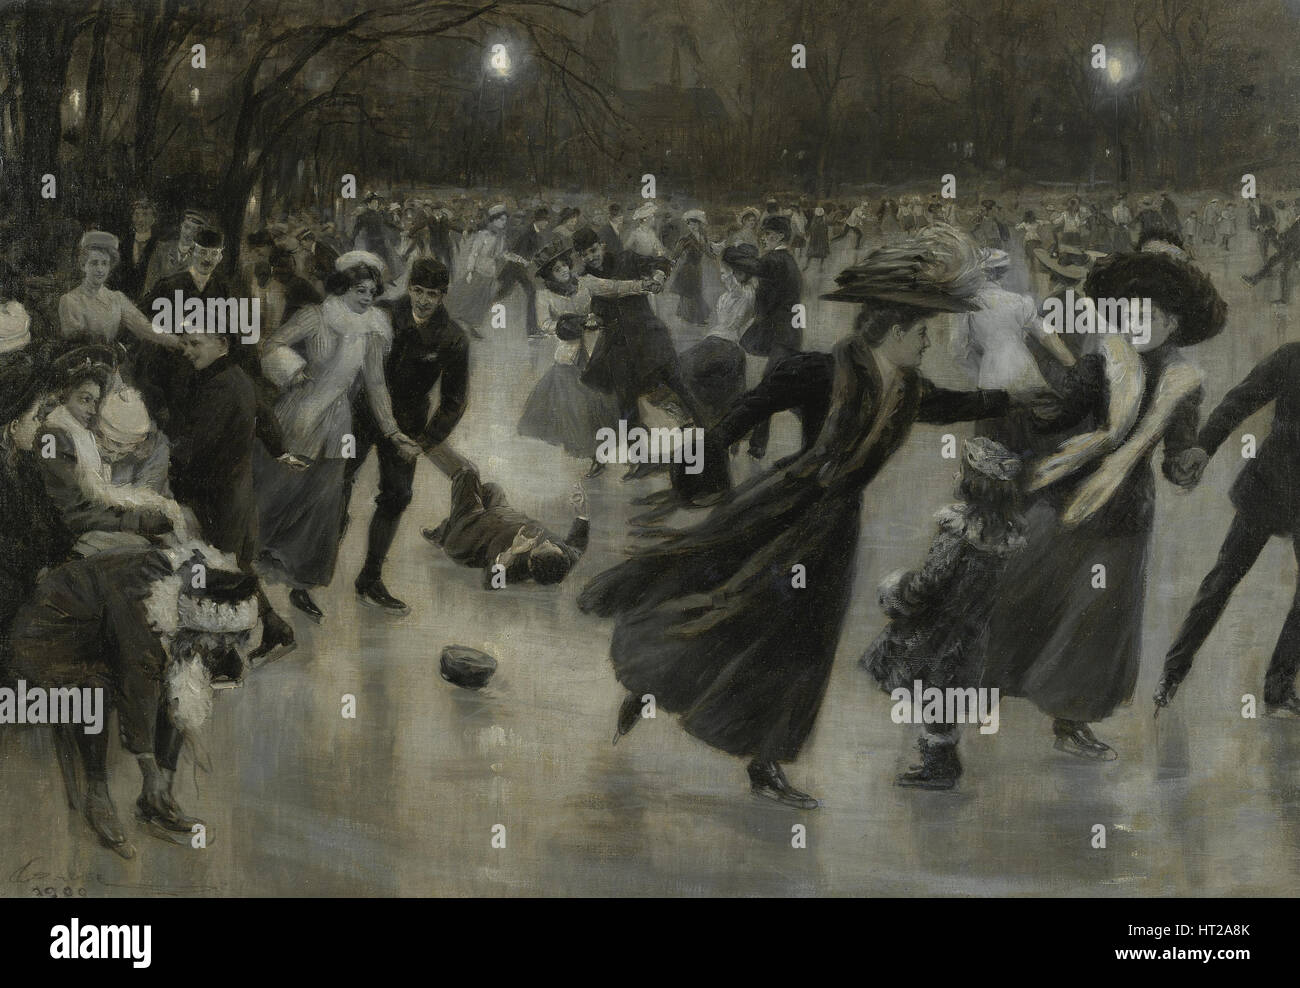 Party on the Ice, 1909. Artist: Gause, Wilhelm (1853-1916) - Stock Image